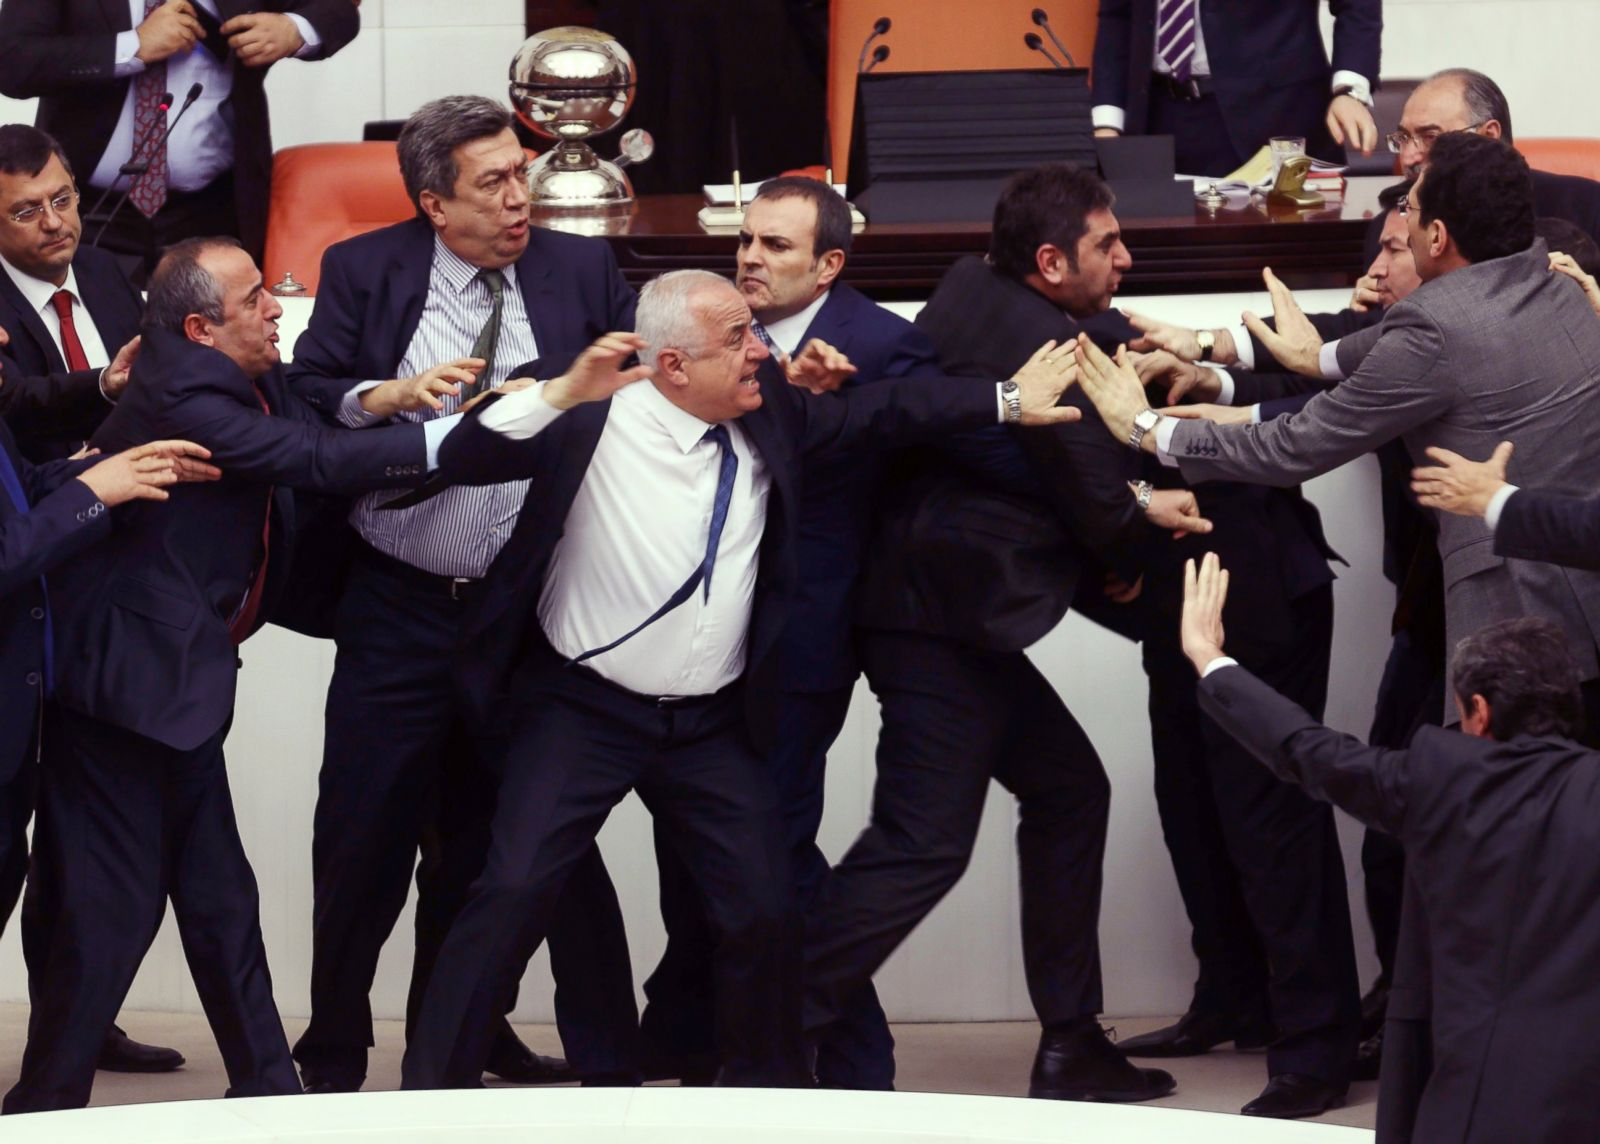 brawl erupts in the turkish parliament picture when politicians